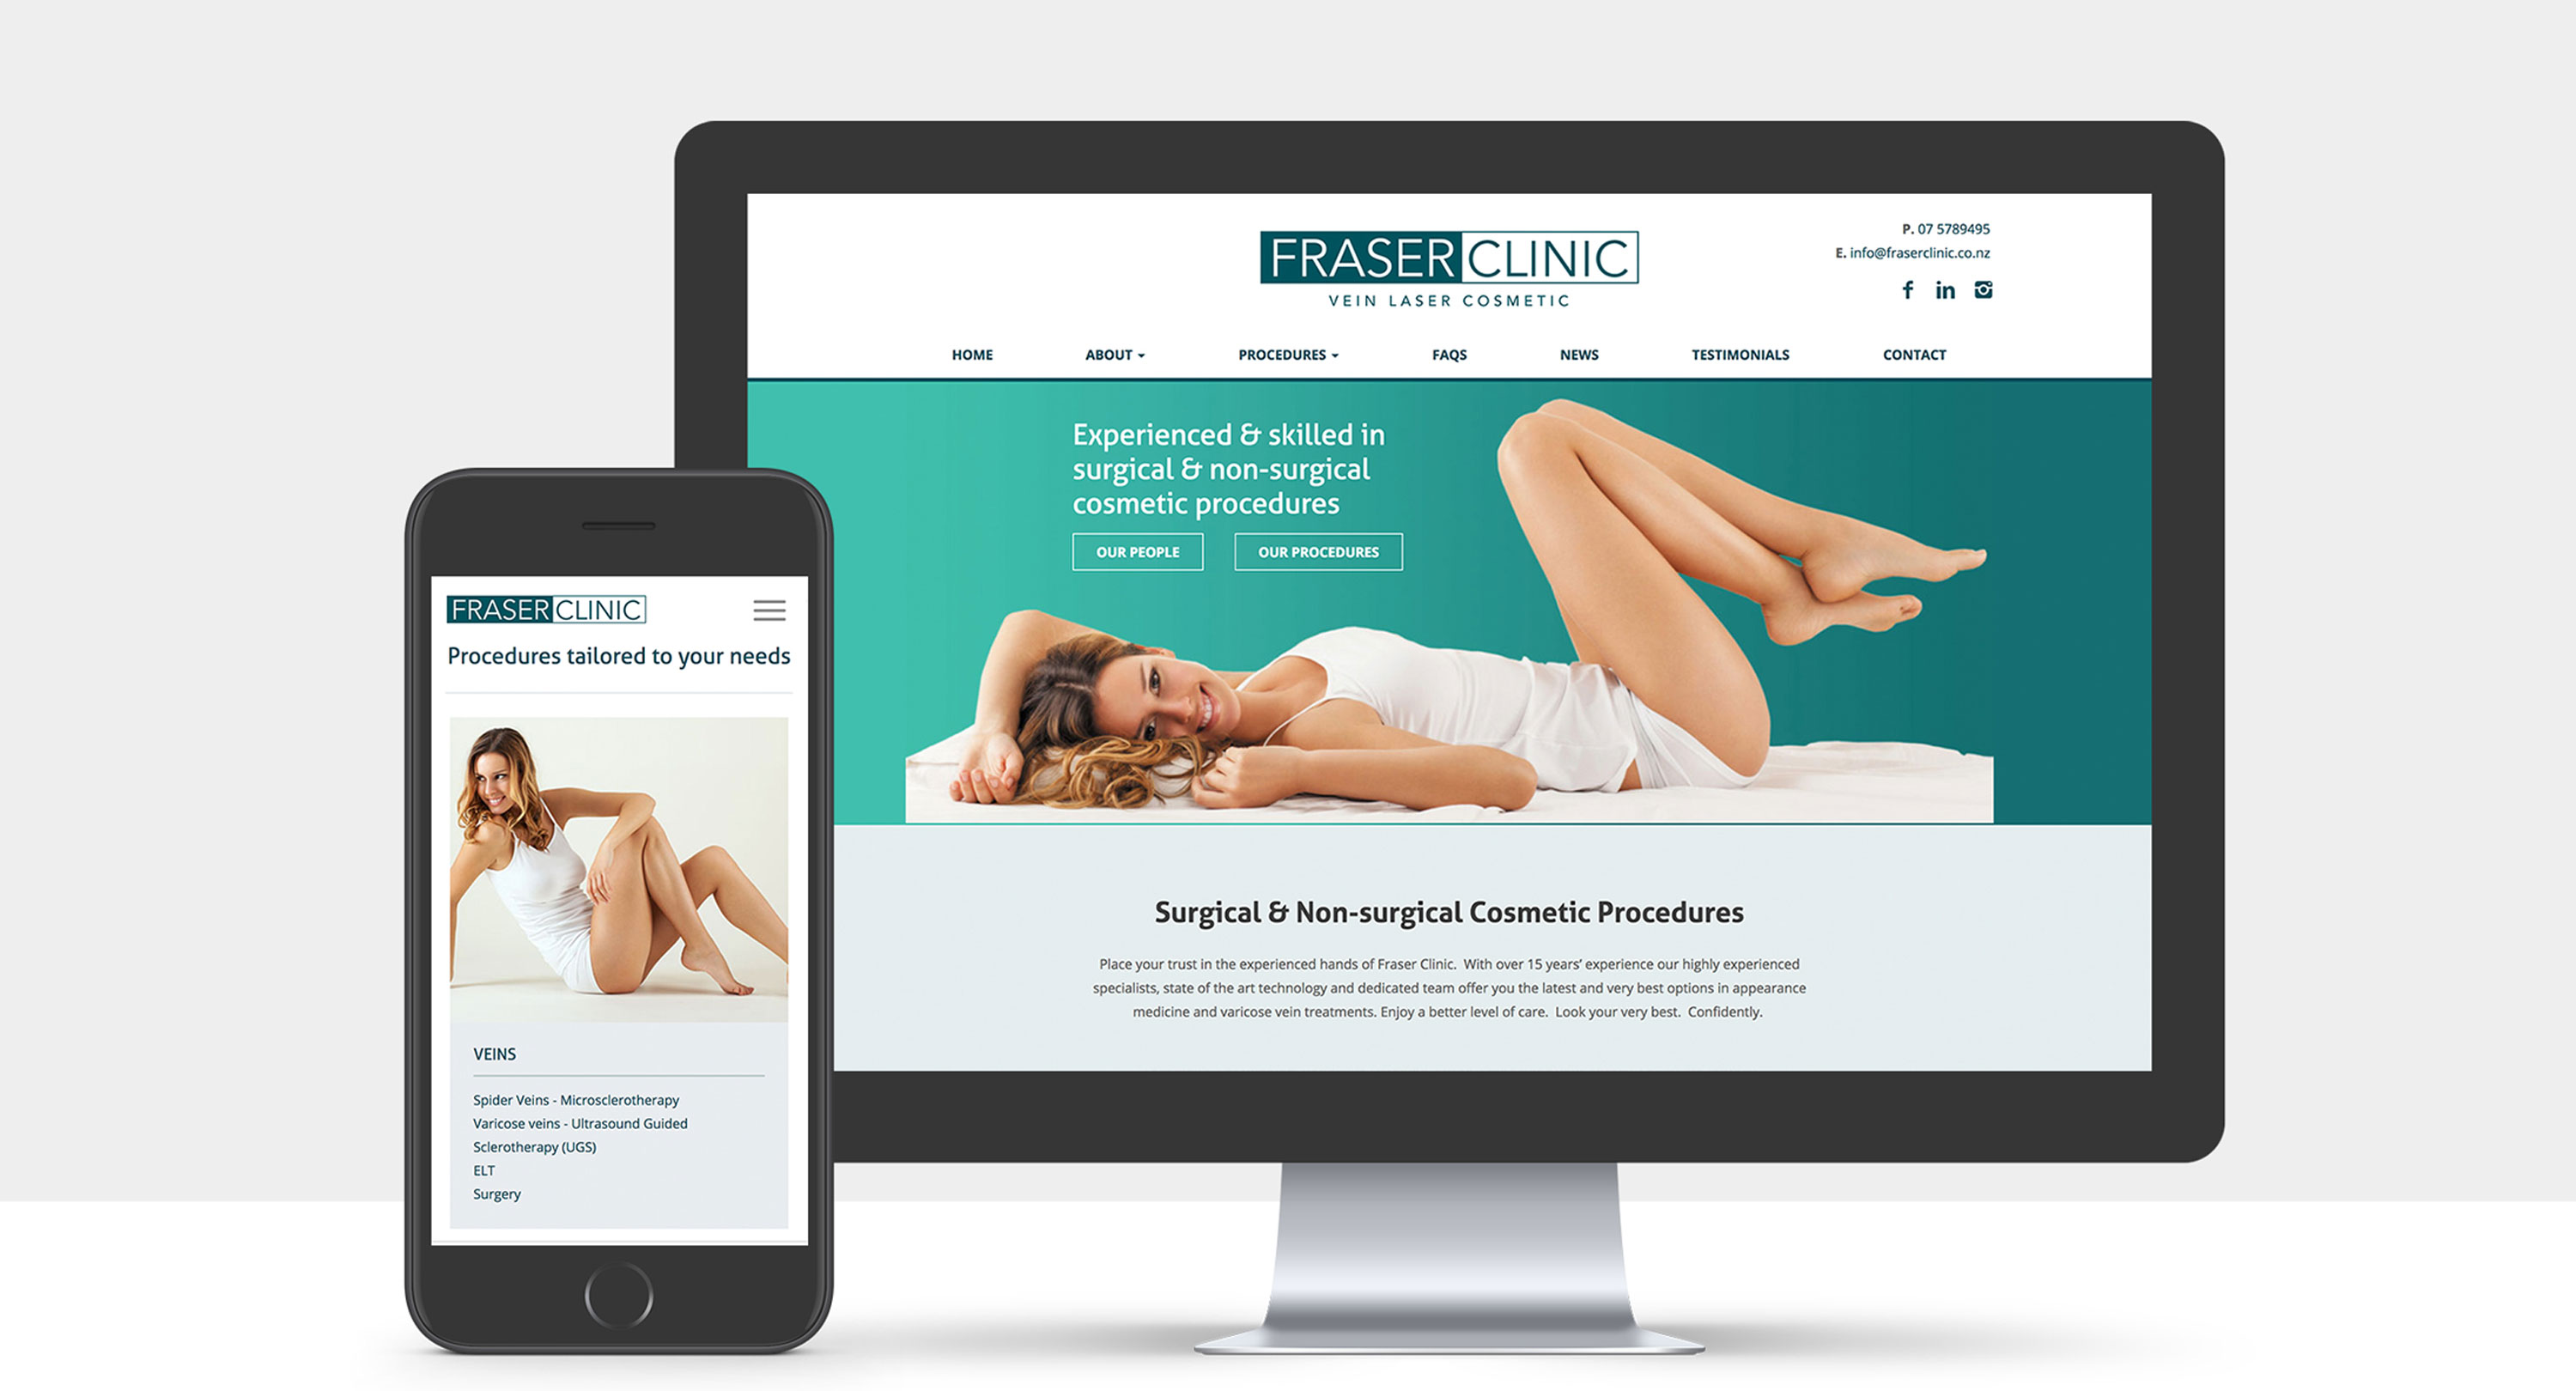 A view of the new Fraser Clinic website.